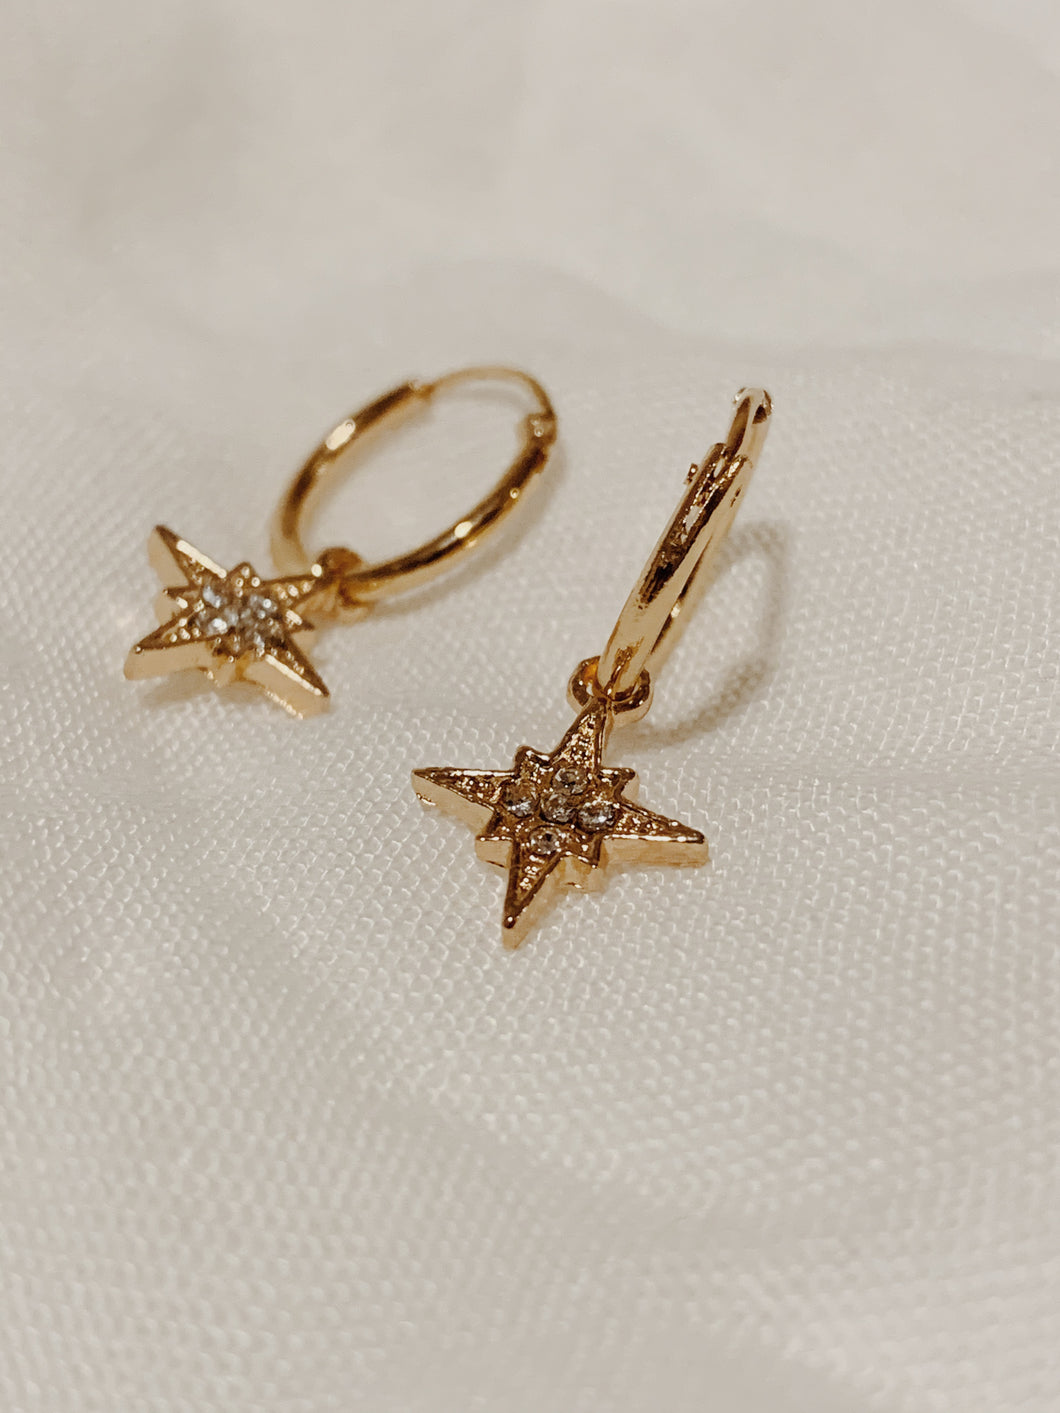 Florence Light - Sleeper Earrings | By: Life in the sun store